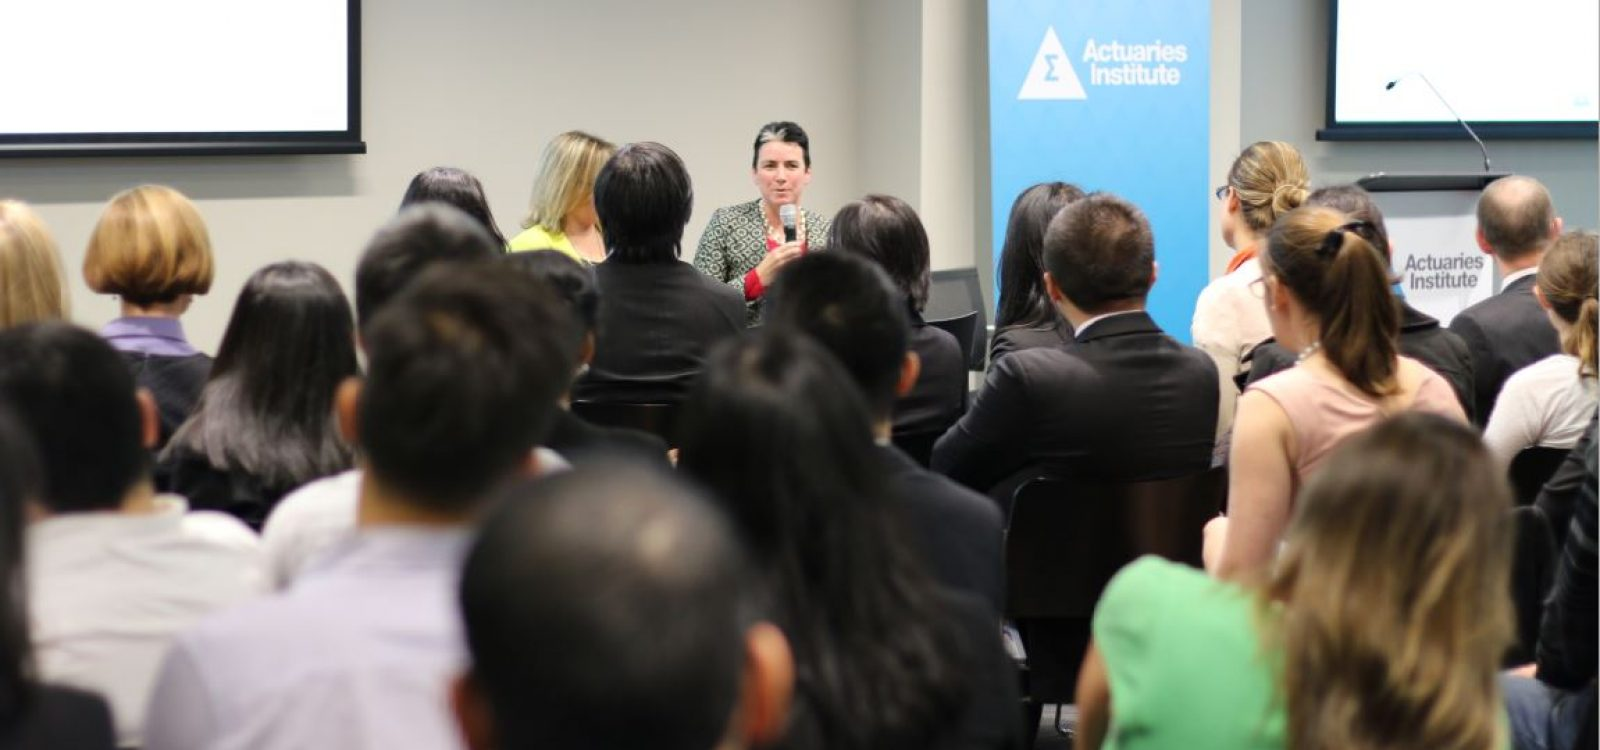 Actuaries in leadership: An interview with Jennifer Lang